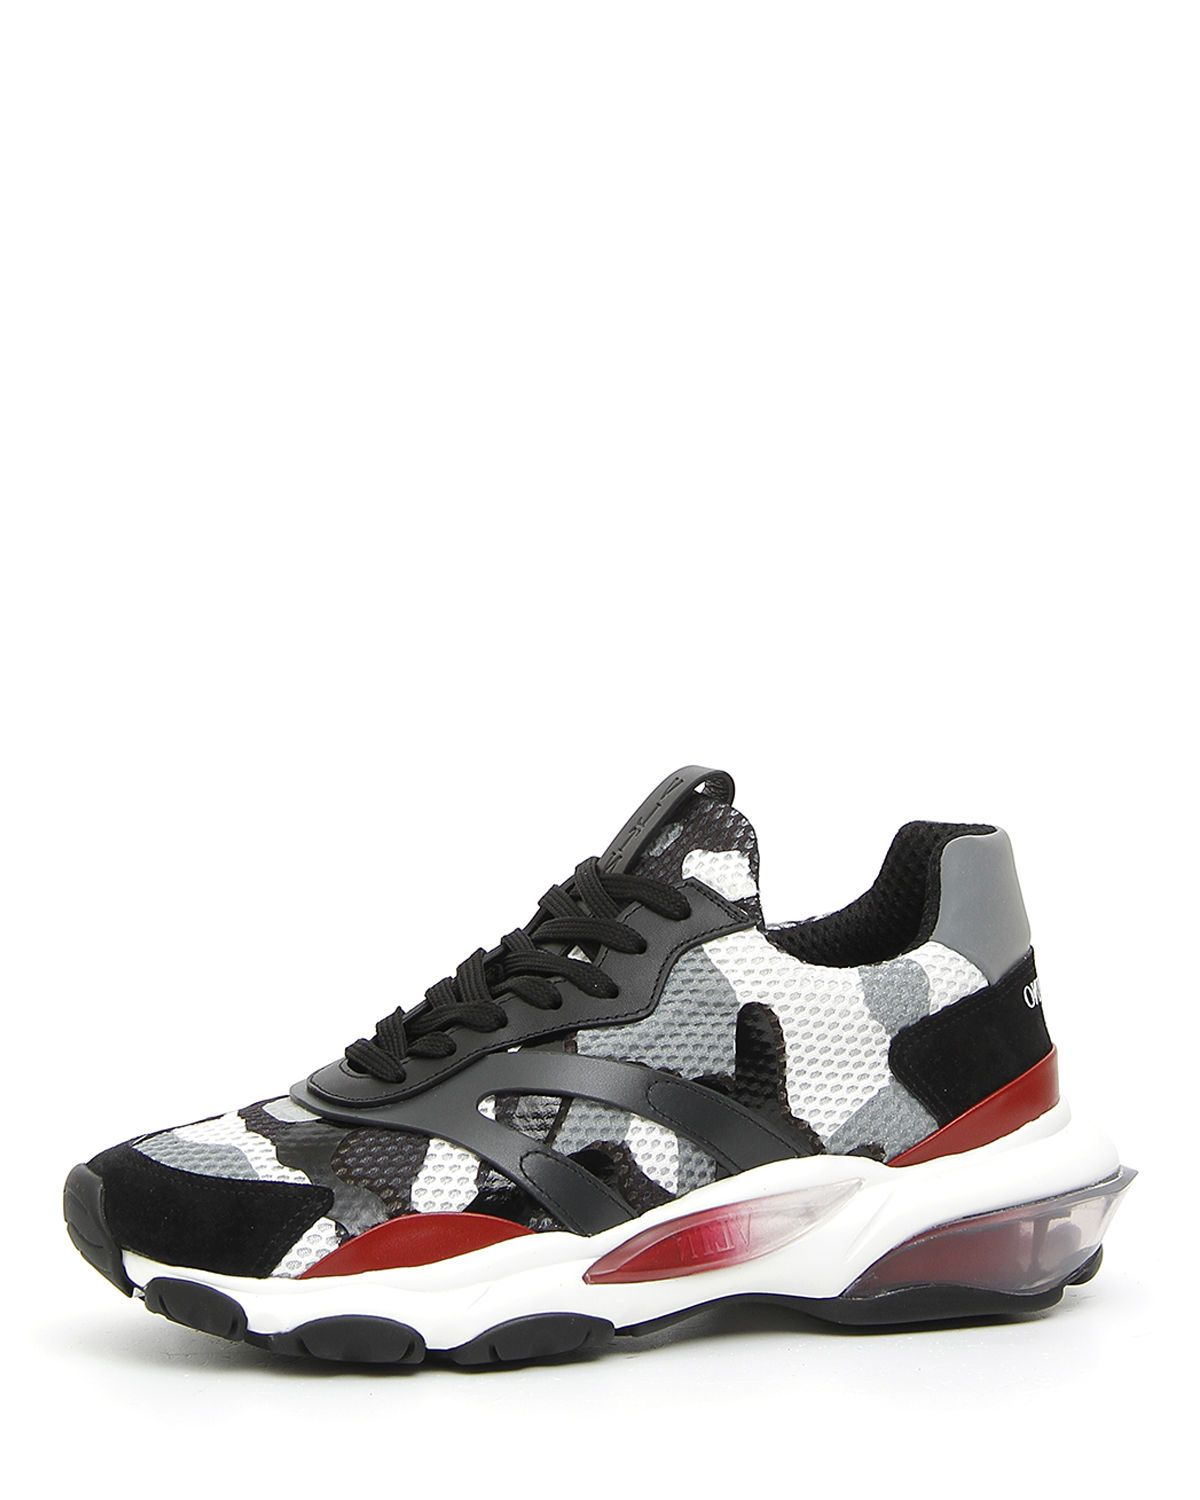 huge discount f52a0 55009 VALENTINO MEN S BOUNCE CAMO LEATHER SNEAKER.  valentino  shoes